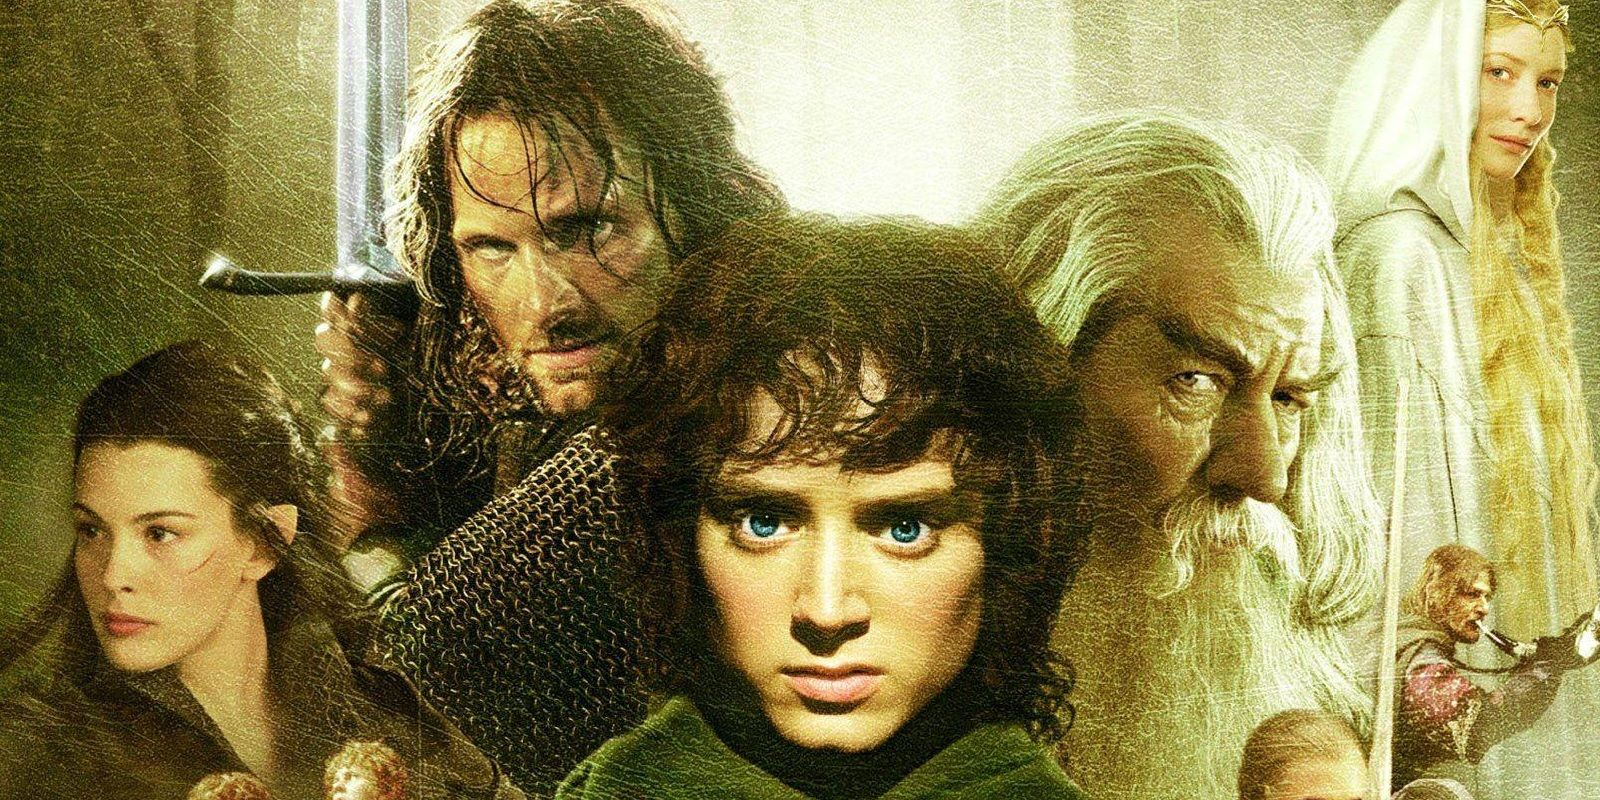 The Witcher, Jupiter's Legacy Director Joins Amazon's Lord of the Rings